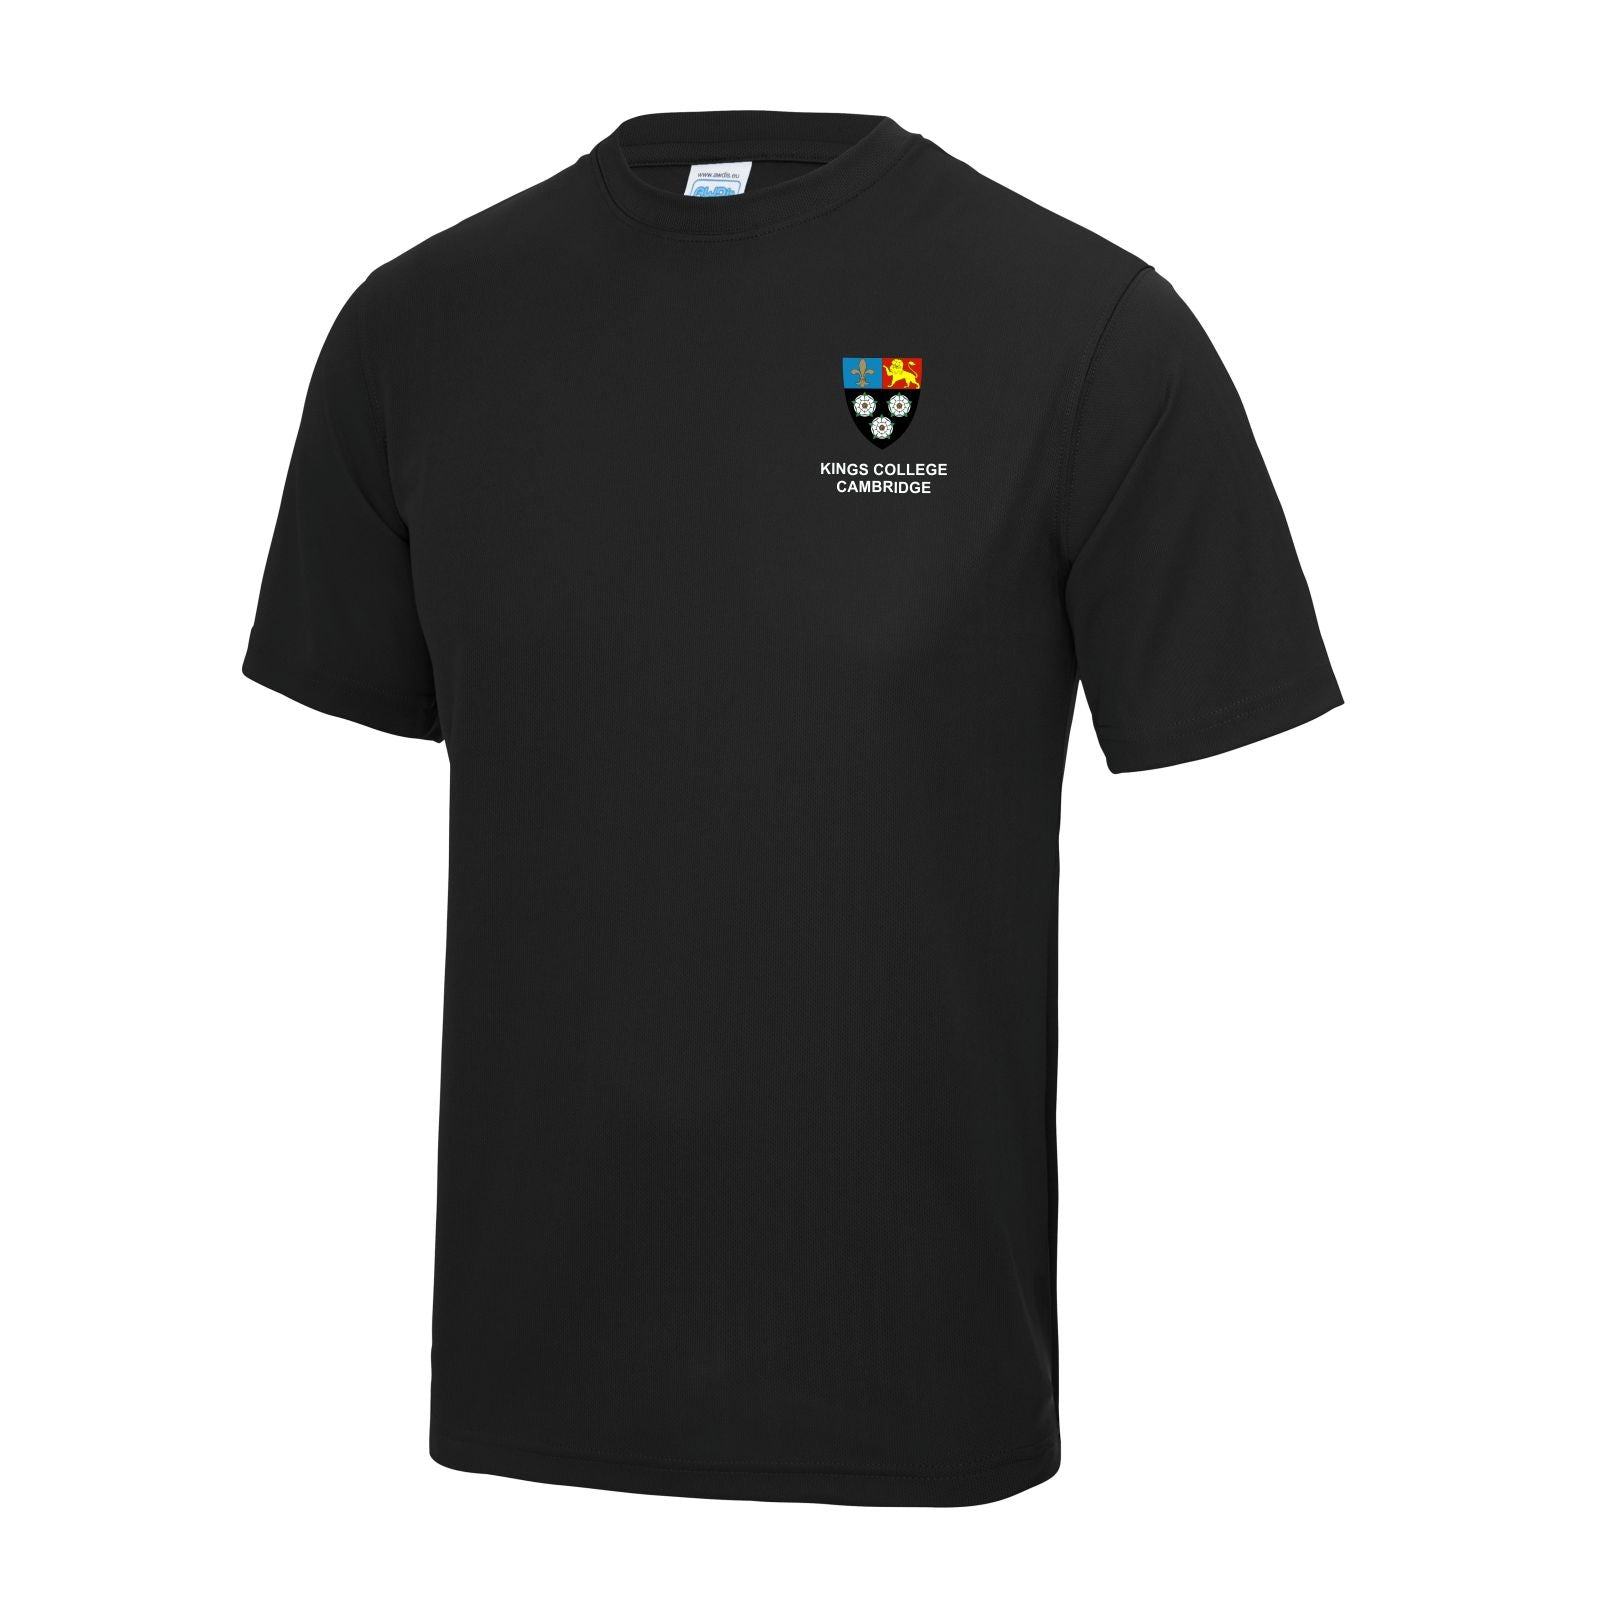 Kings College Cambridge Performance tee